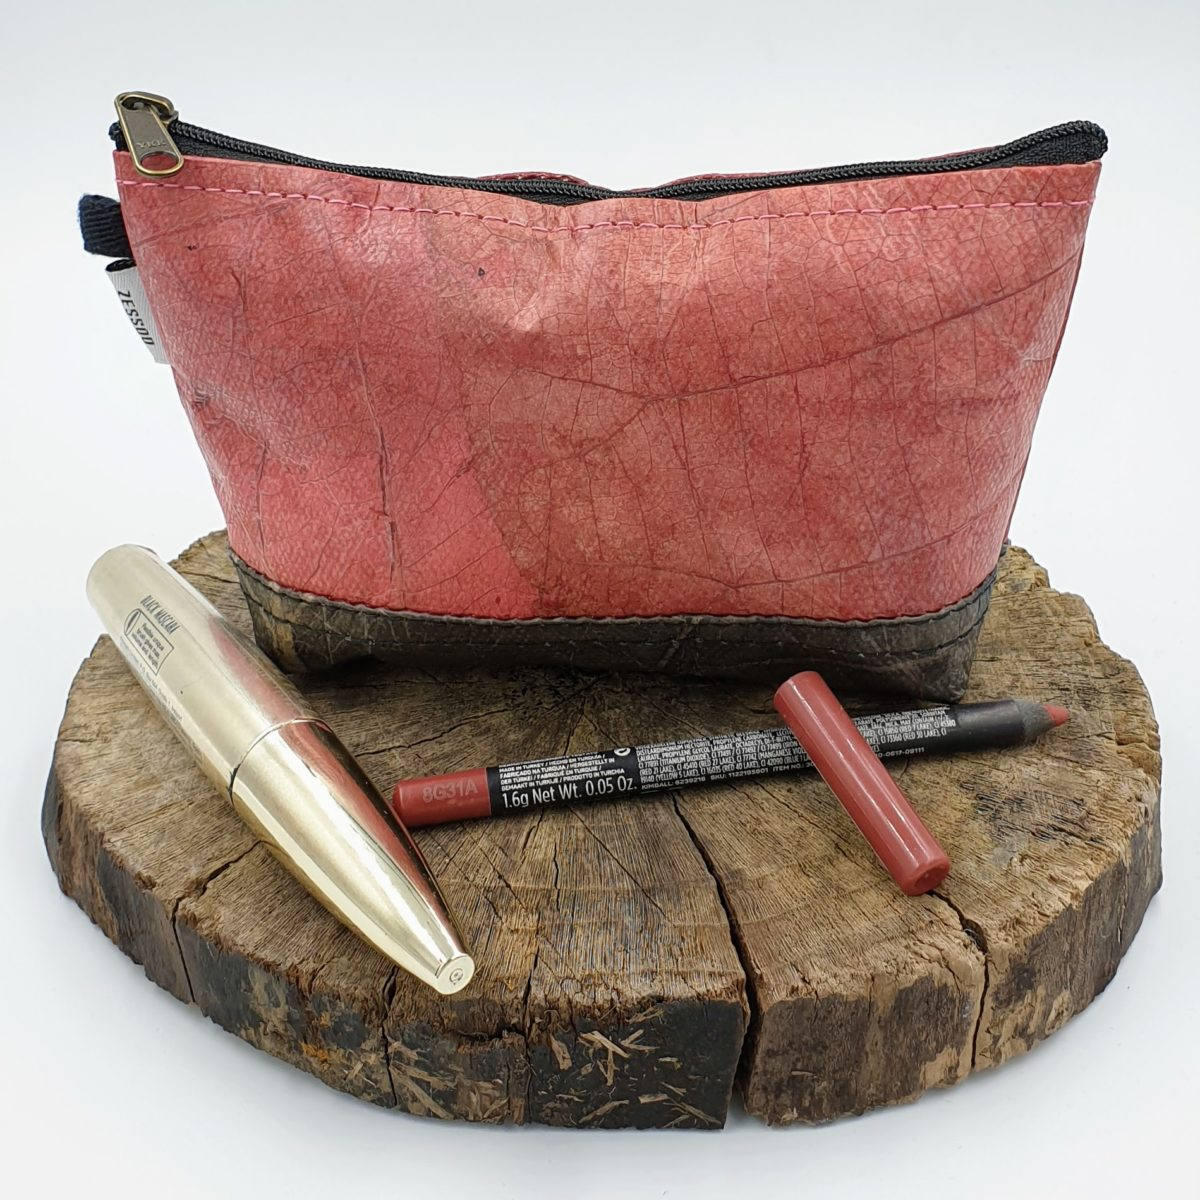 Vegan Makeup Bag